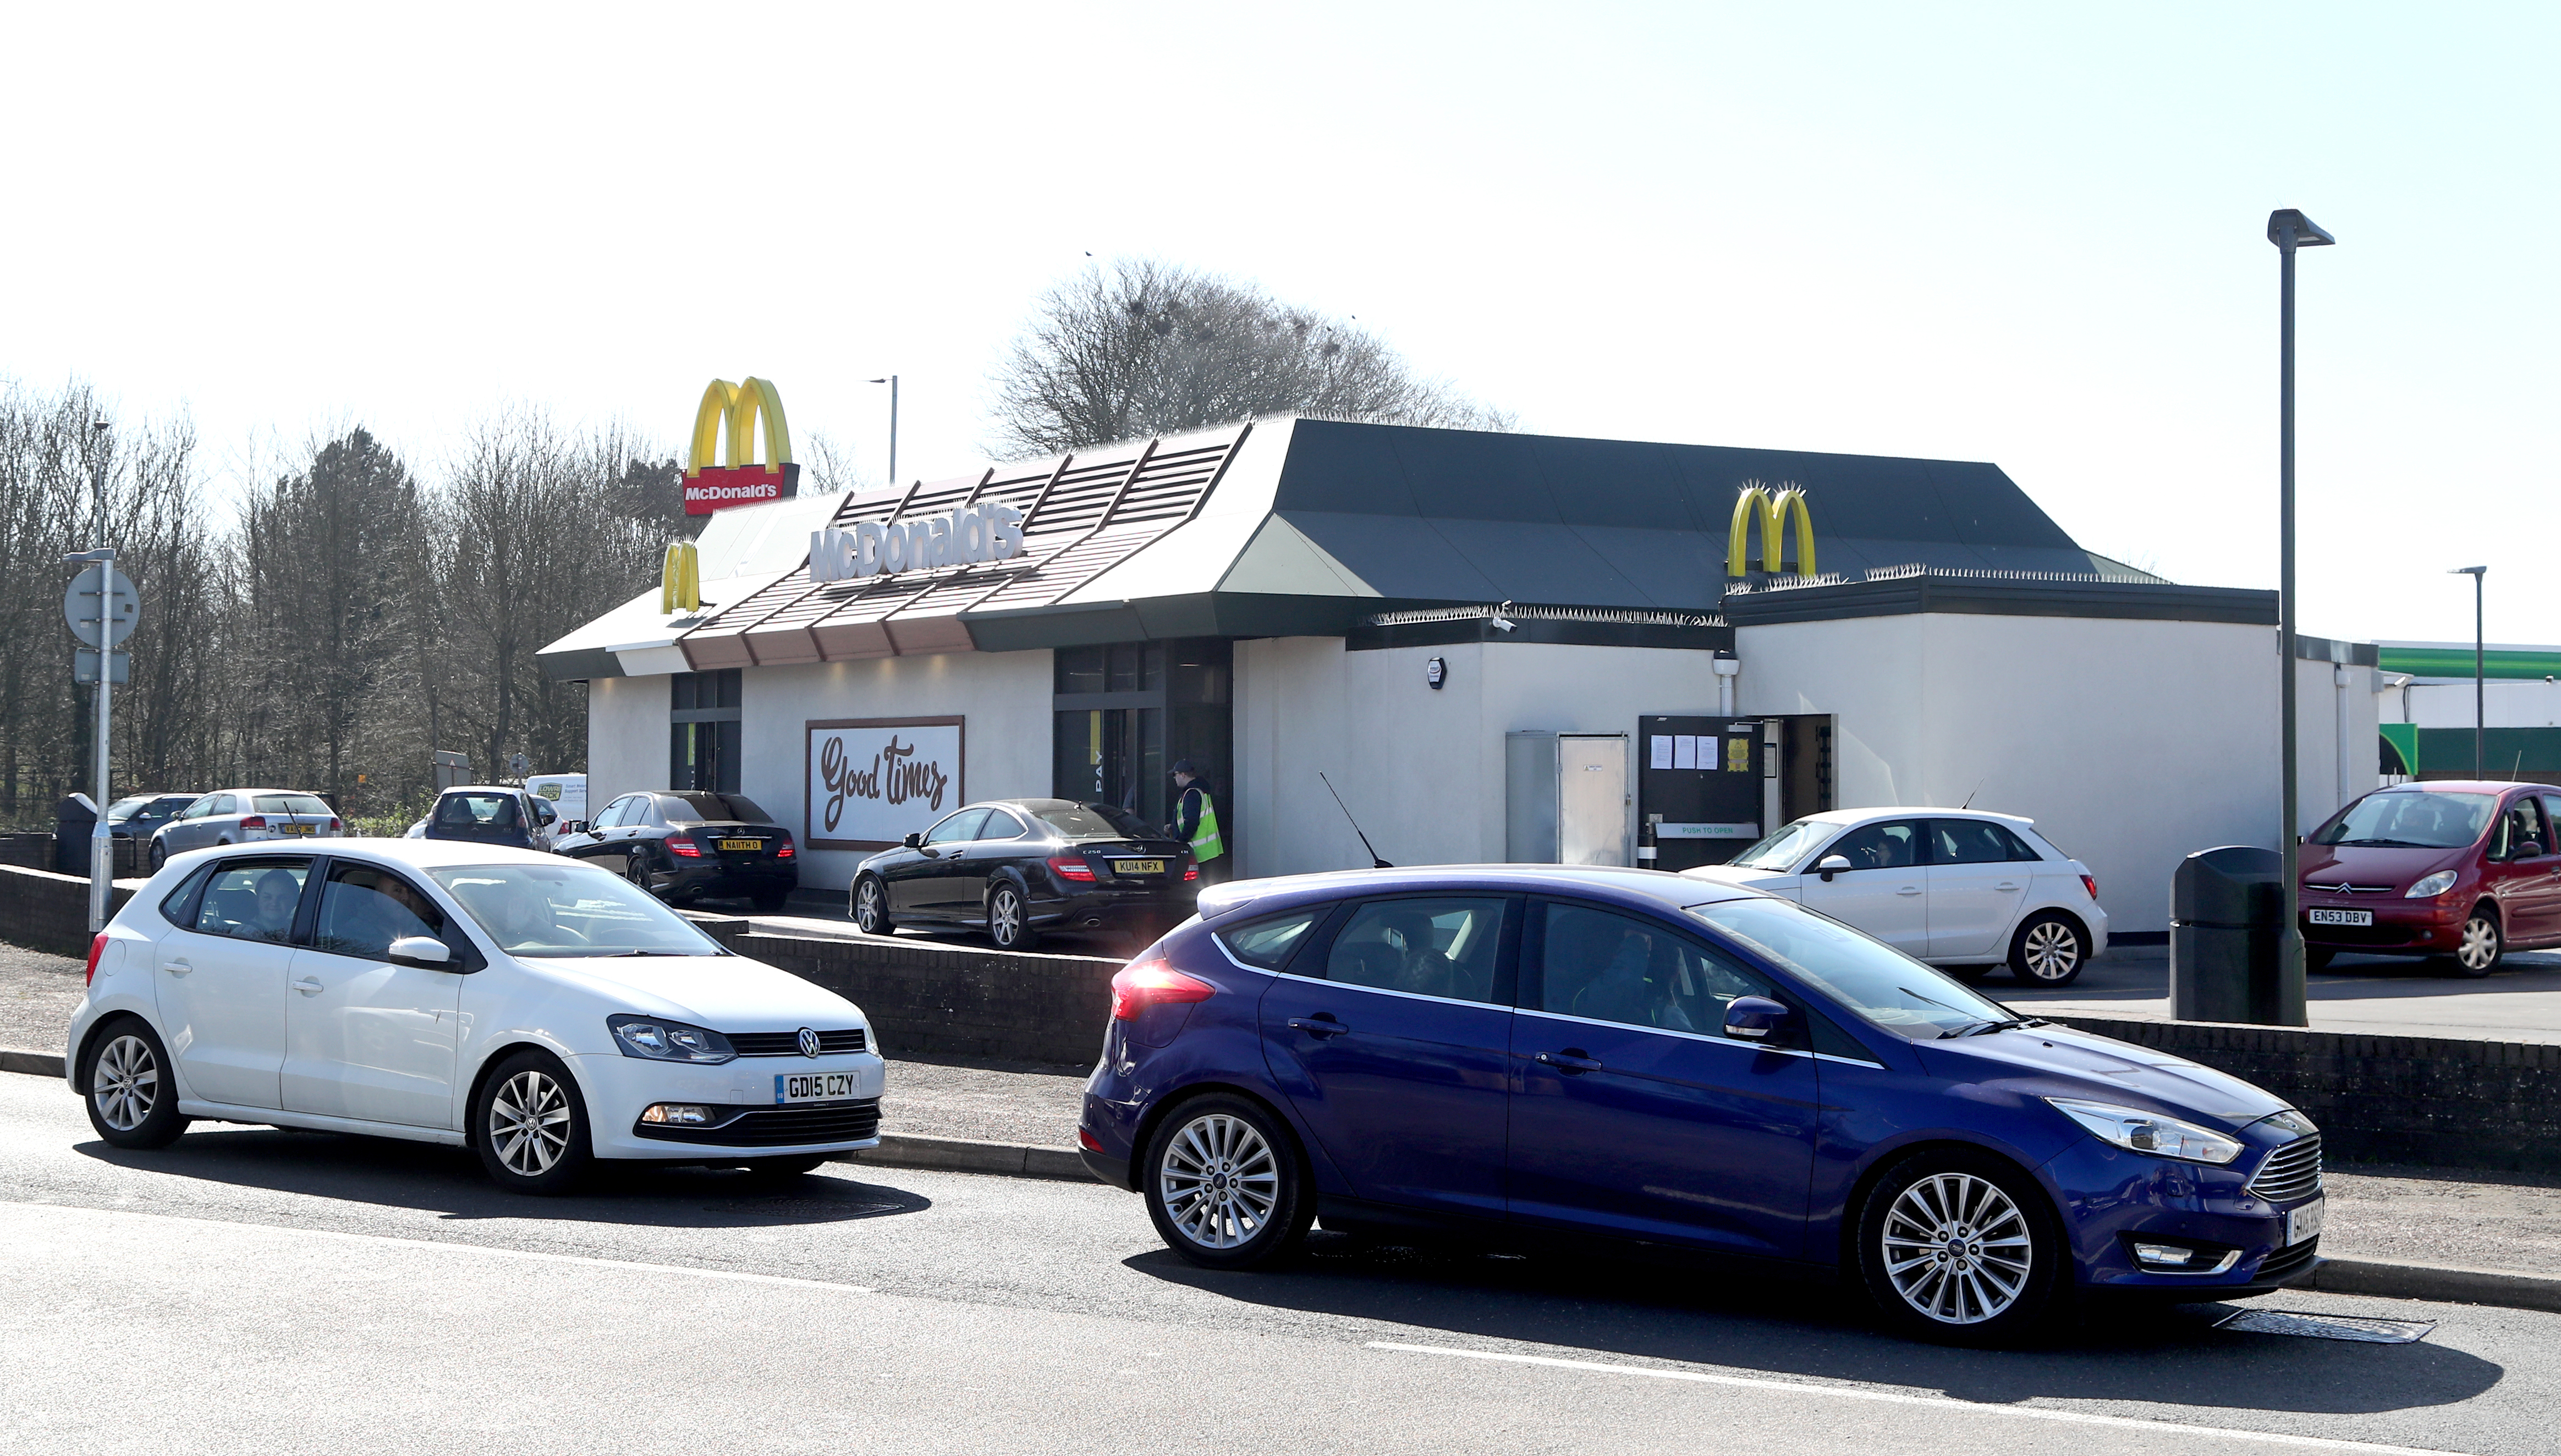 Drivers form a long queue to use a McDonald's drive-thru near Dover in Kent as it was announced that all of their restaurant locations in the UK and Ireland will close by 7pm on Monday to protect the safety of their employees and customers from coronavirus.